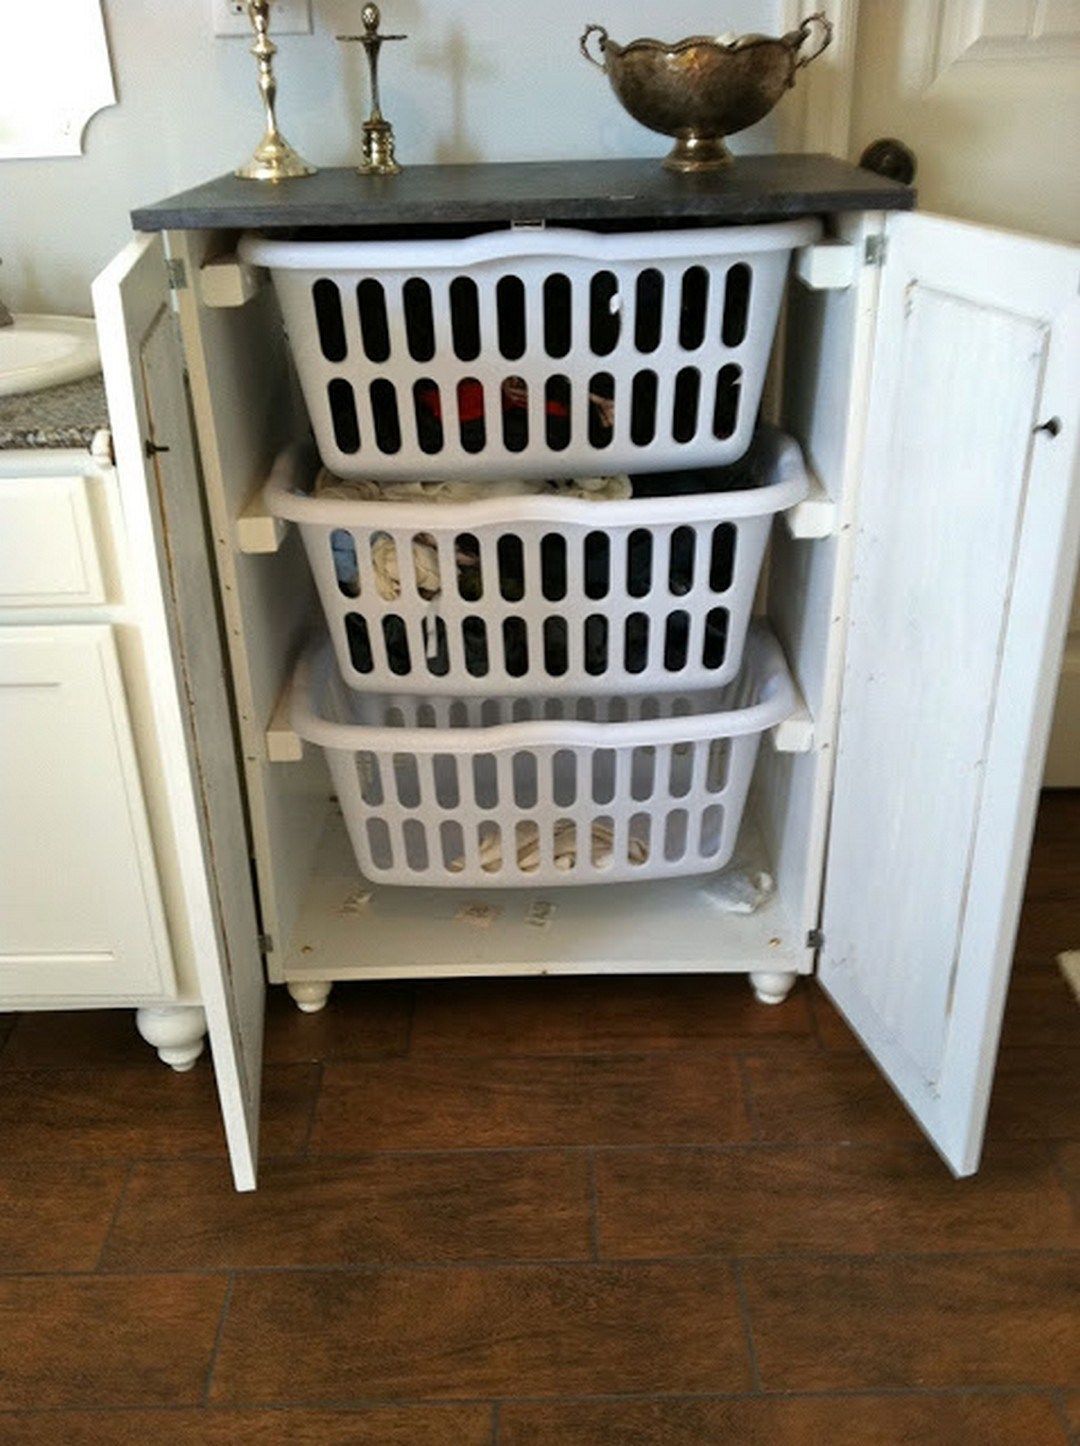 Genius Apartment Storage Ideas For Small Spaces 5 Laundry Basket Dresser Laundry Basket Laundry Room